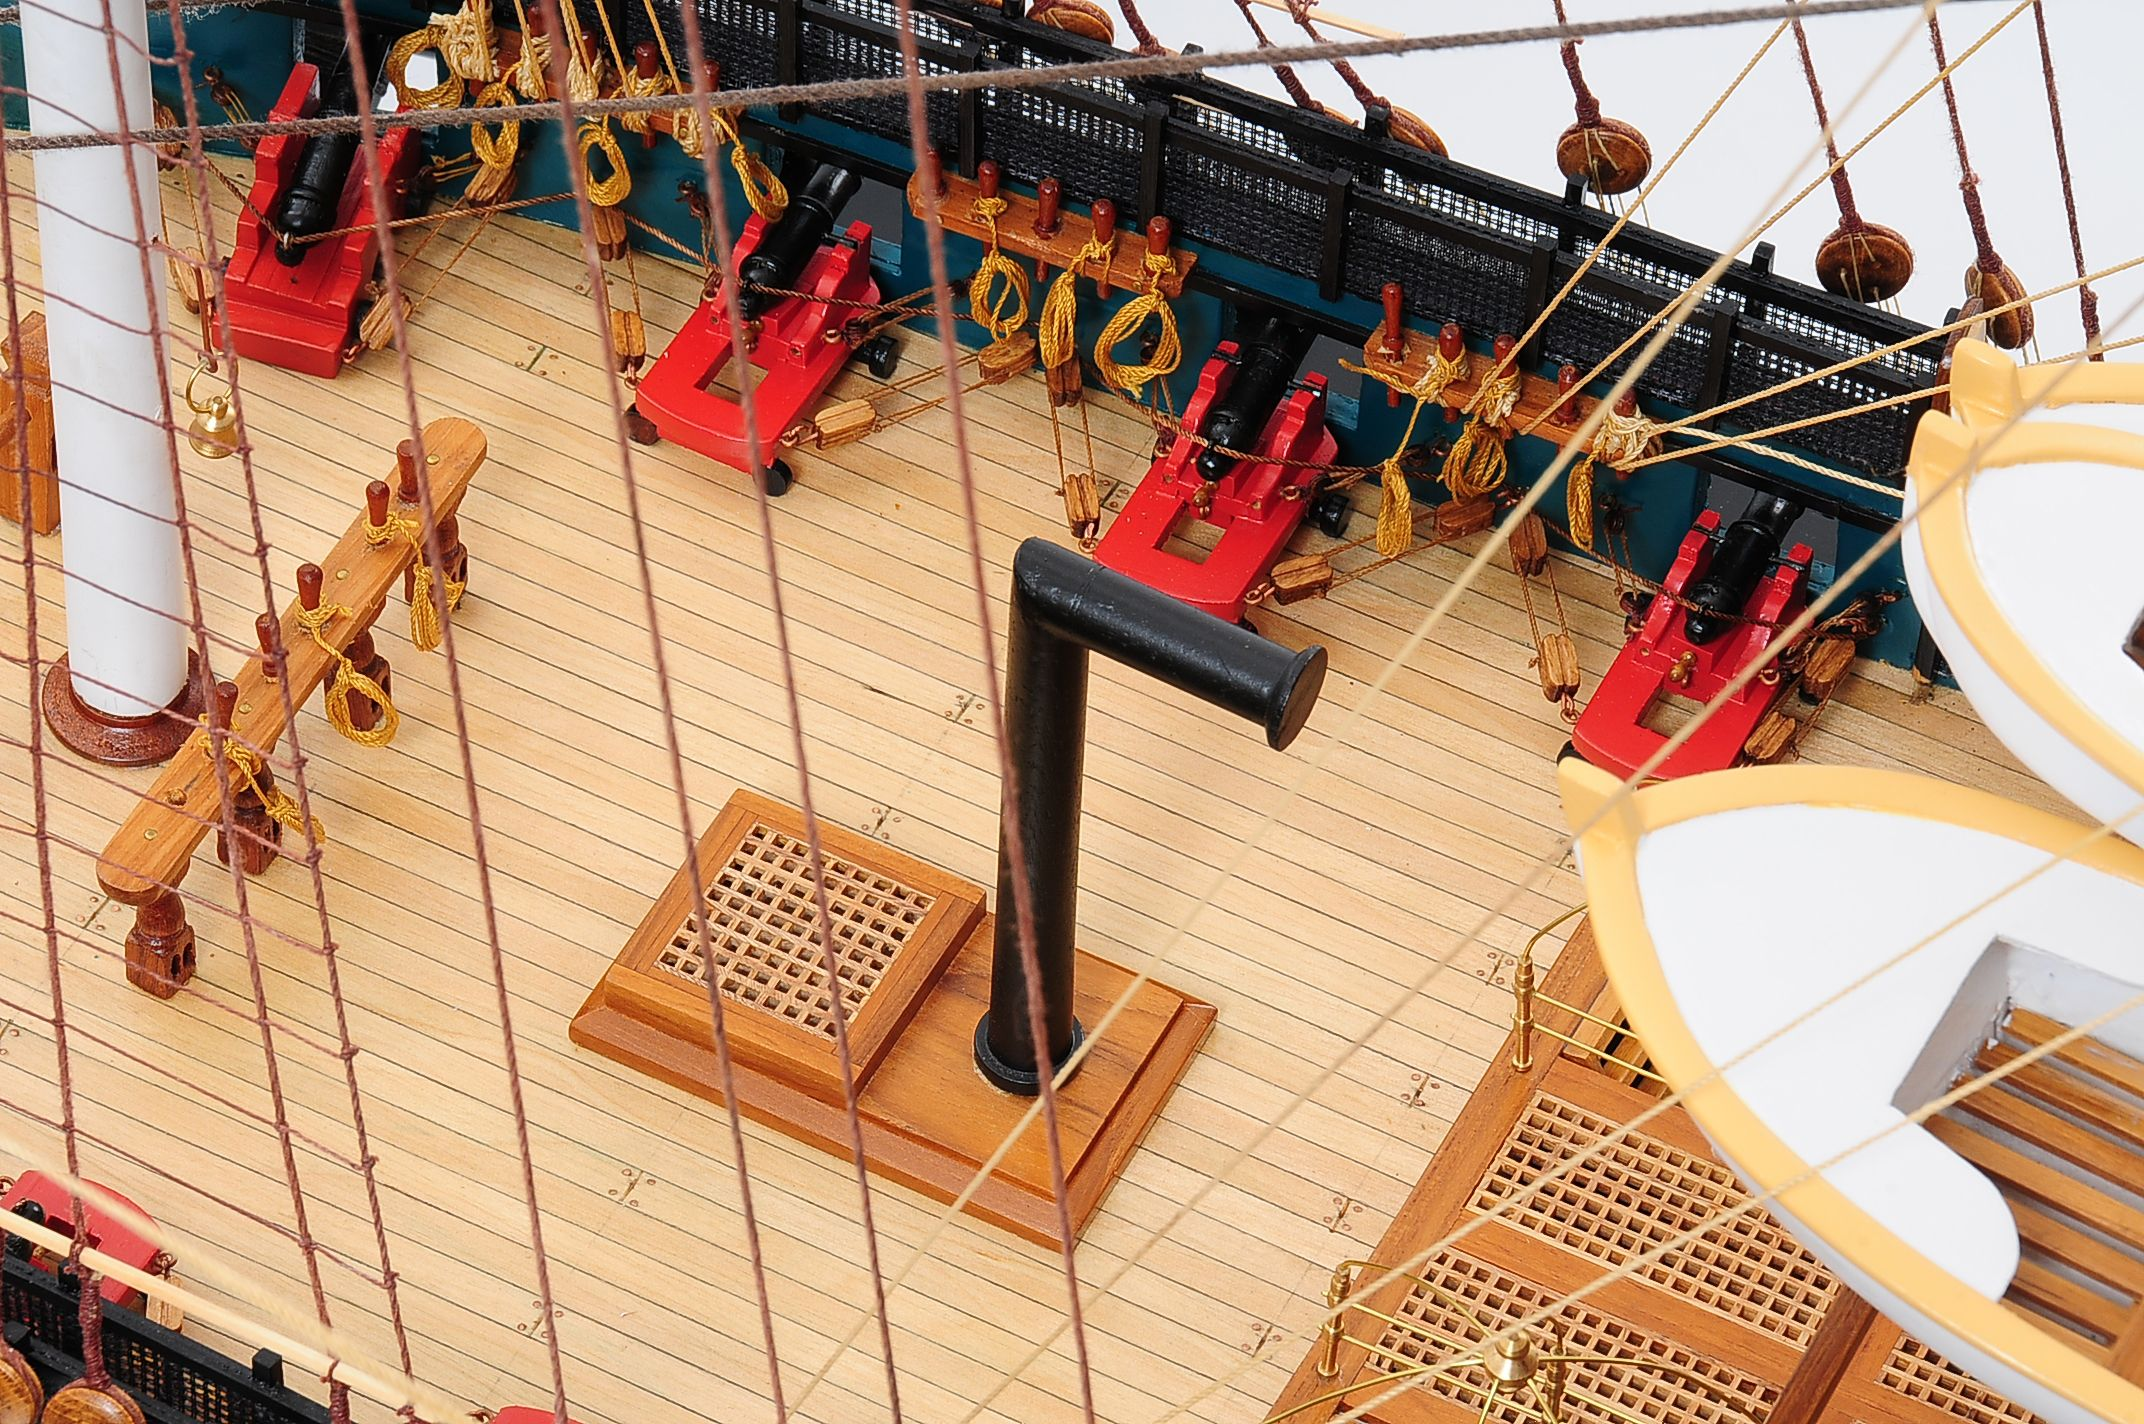 1258-7881-USS-Constitution-Model-Ship-Premier-Range